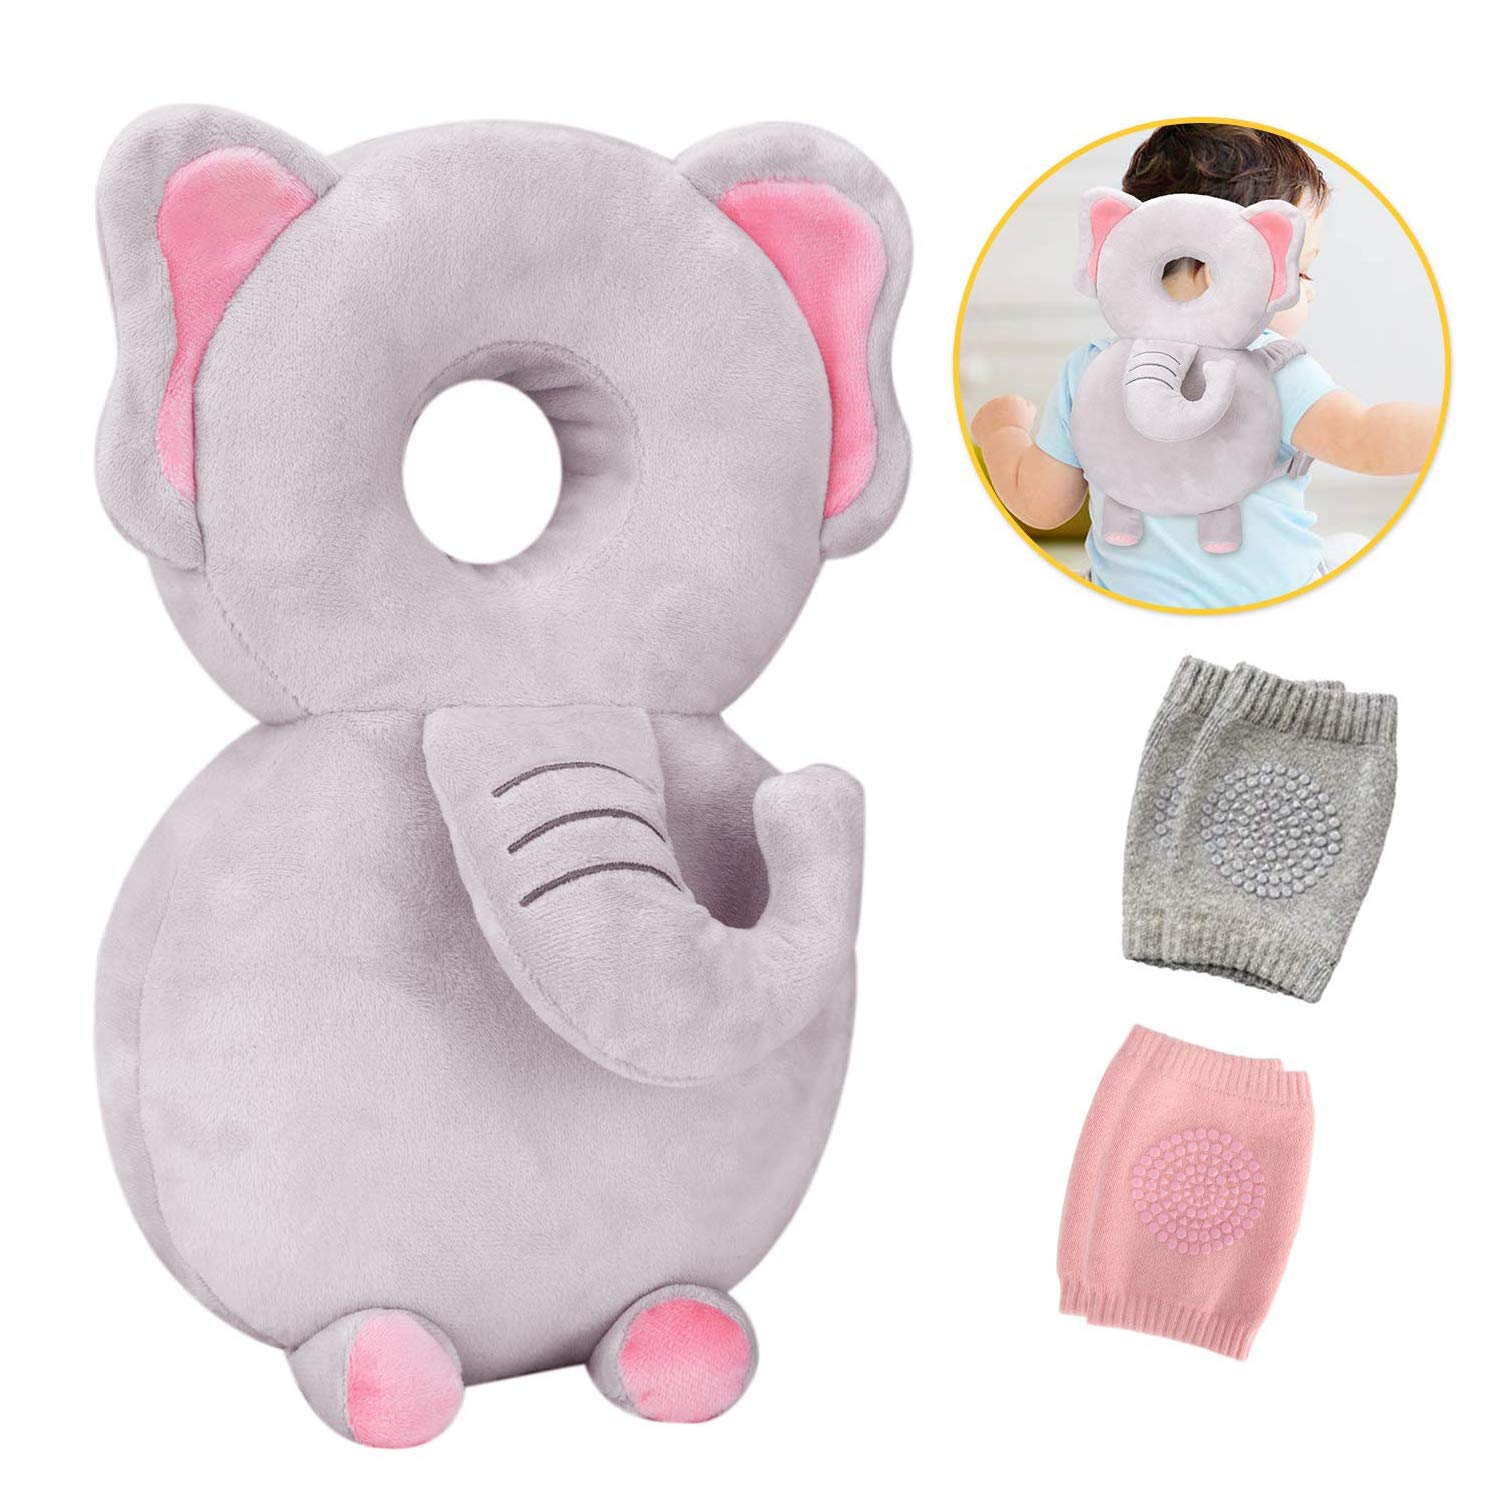 Toddler Baby Head Protection & Baby Knee Pads for Crawling and Walking, Babies Head Safety Pad Cushion Adjustable Backpack Suitable for 4-24 Months (Elephant & Pink & Gray)